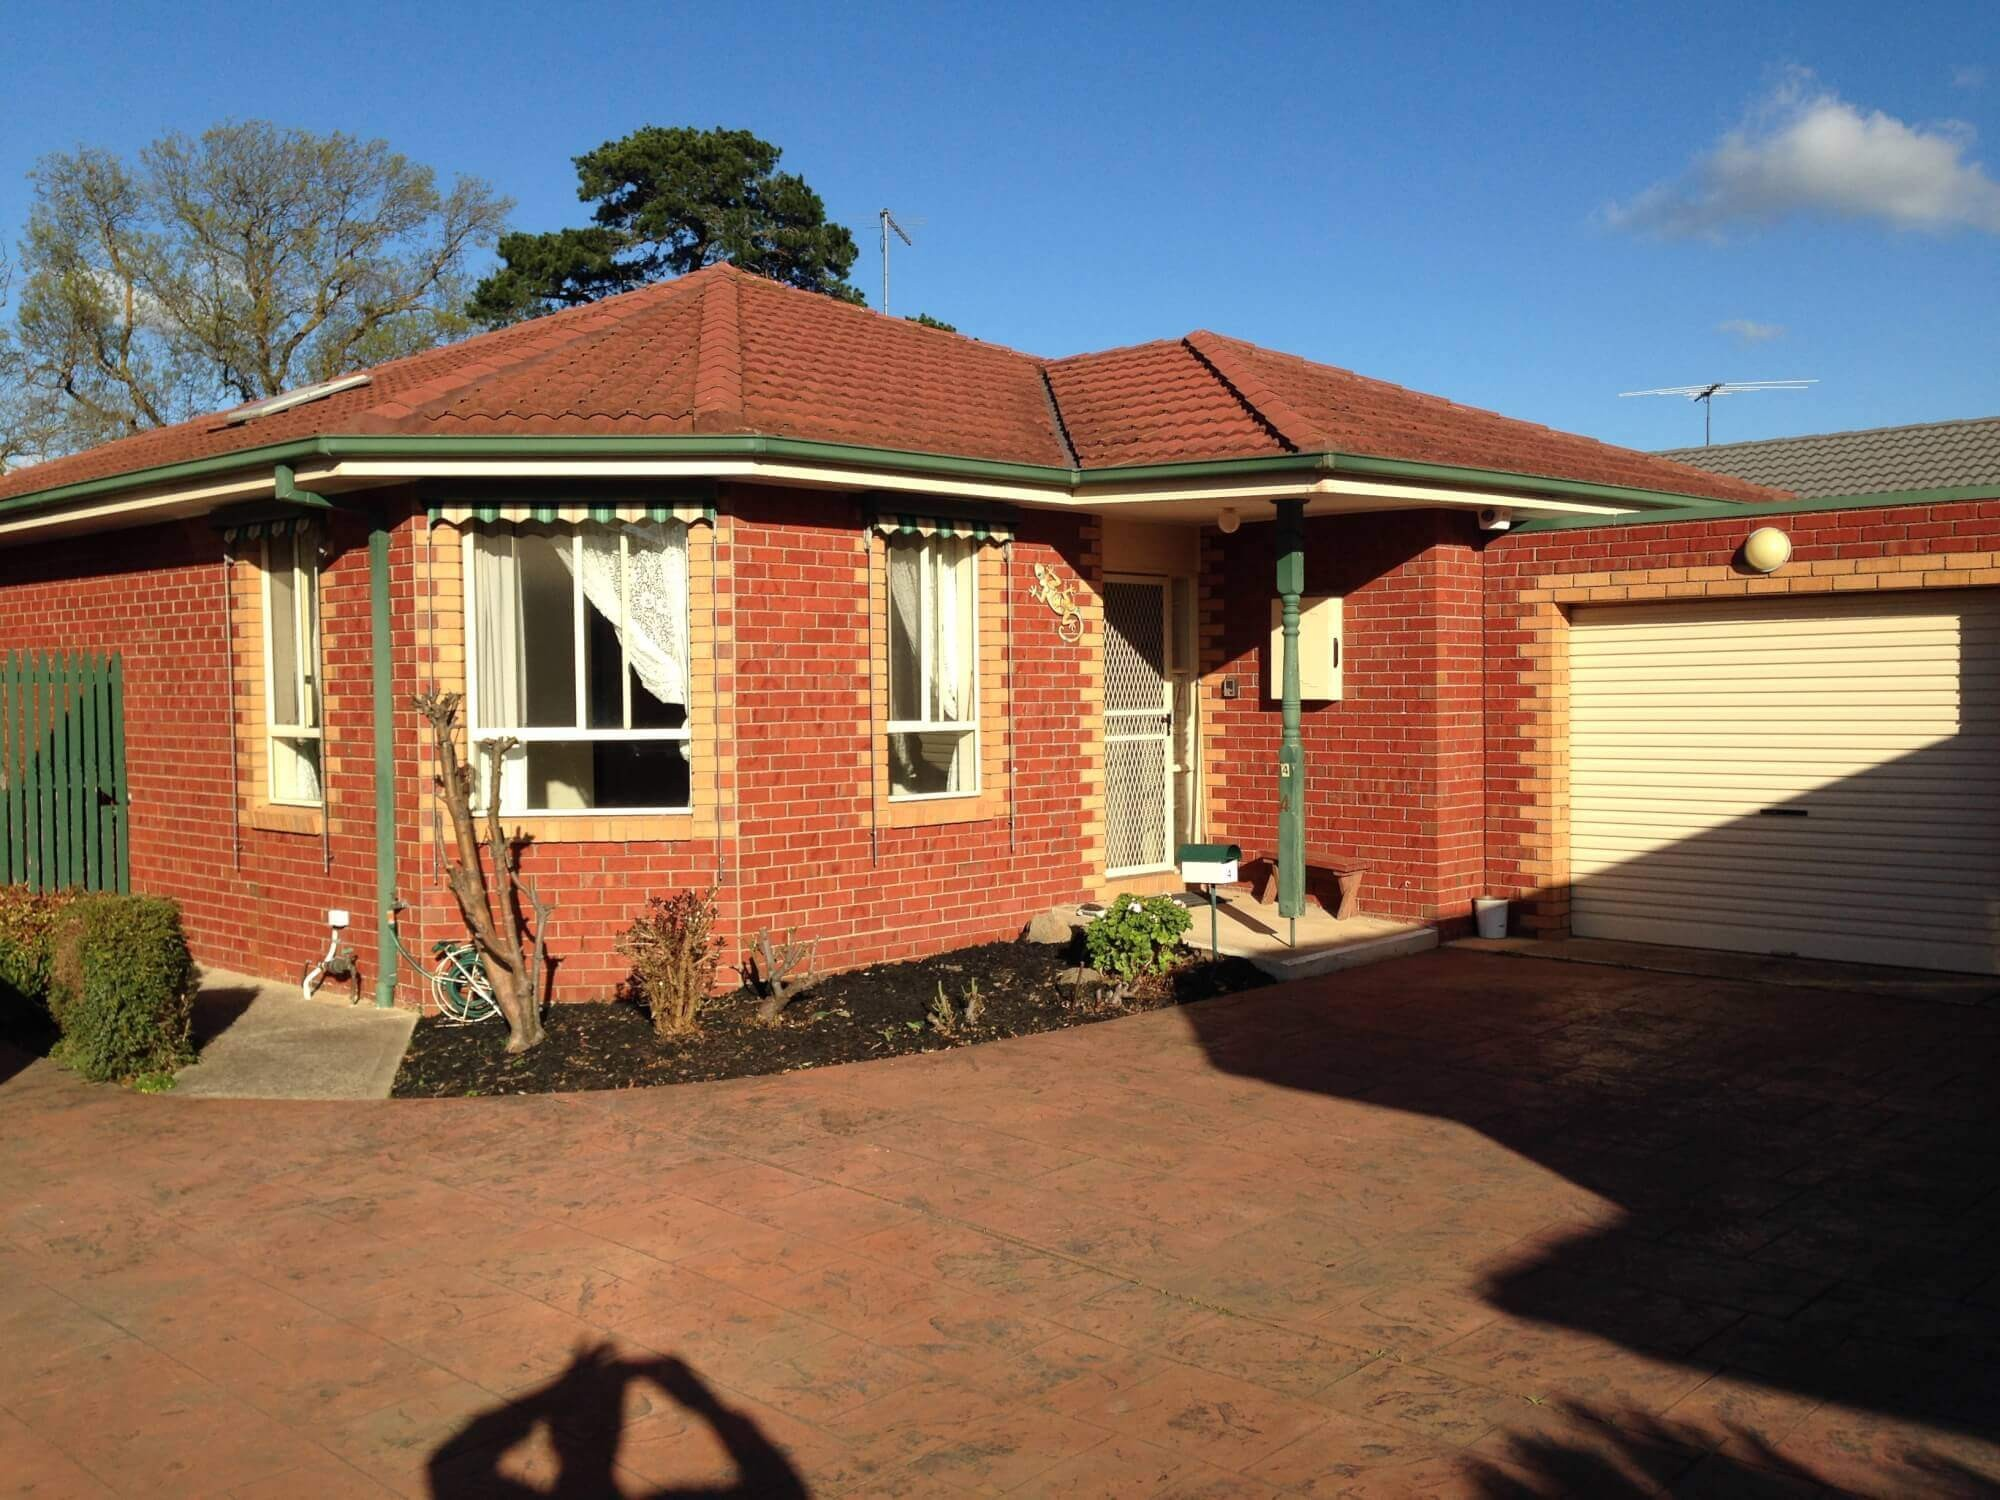 Property for sale Whittlesea 3757 VIC